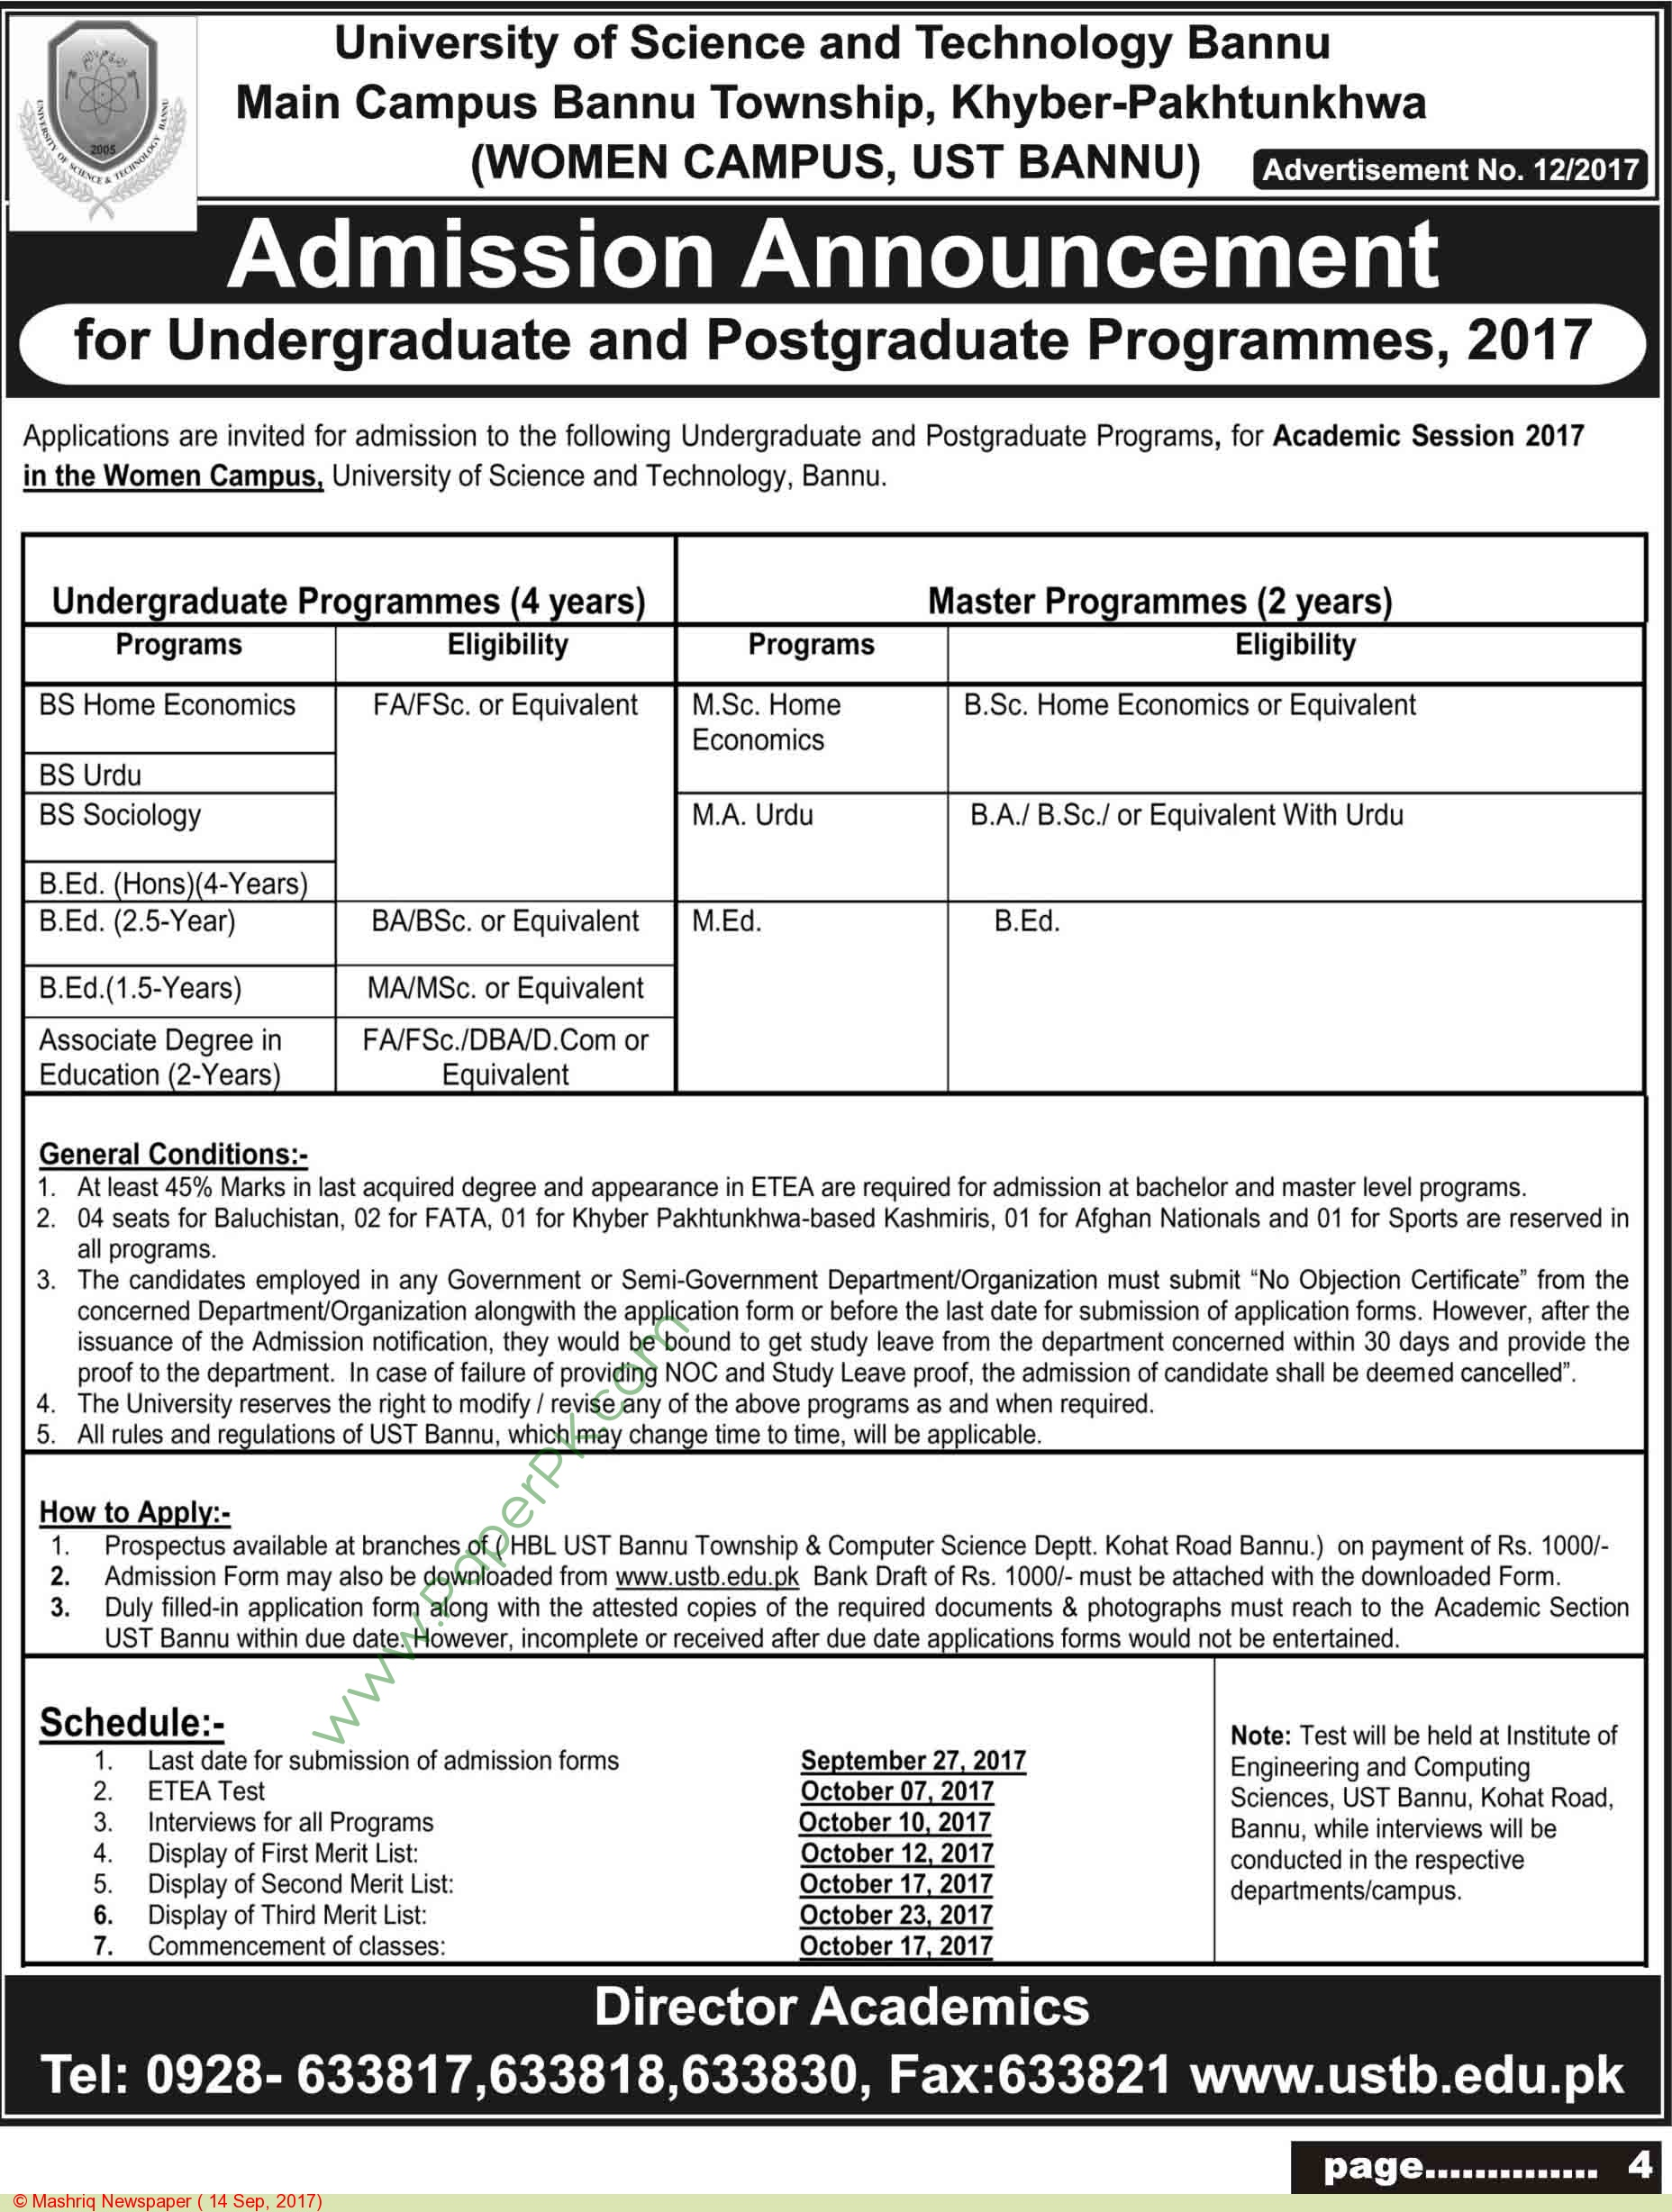 university of science and technology bannu admission 2